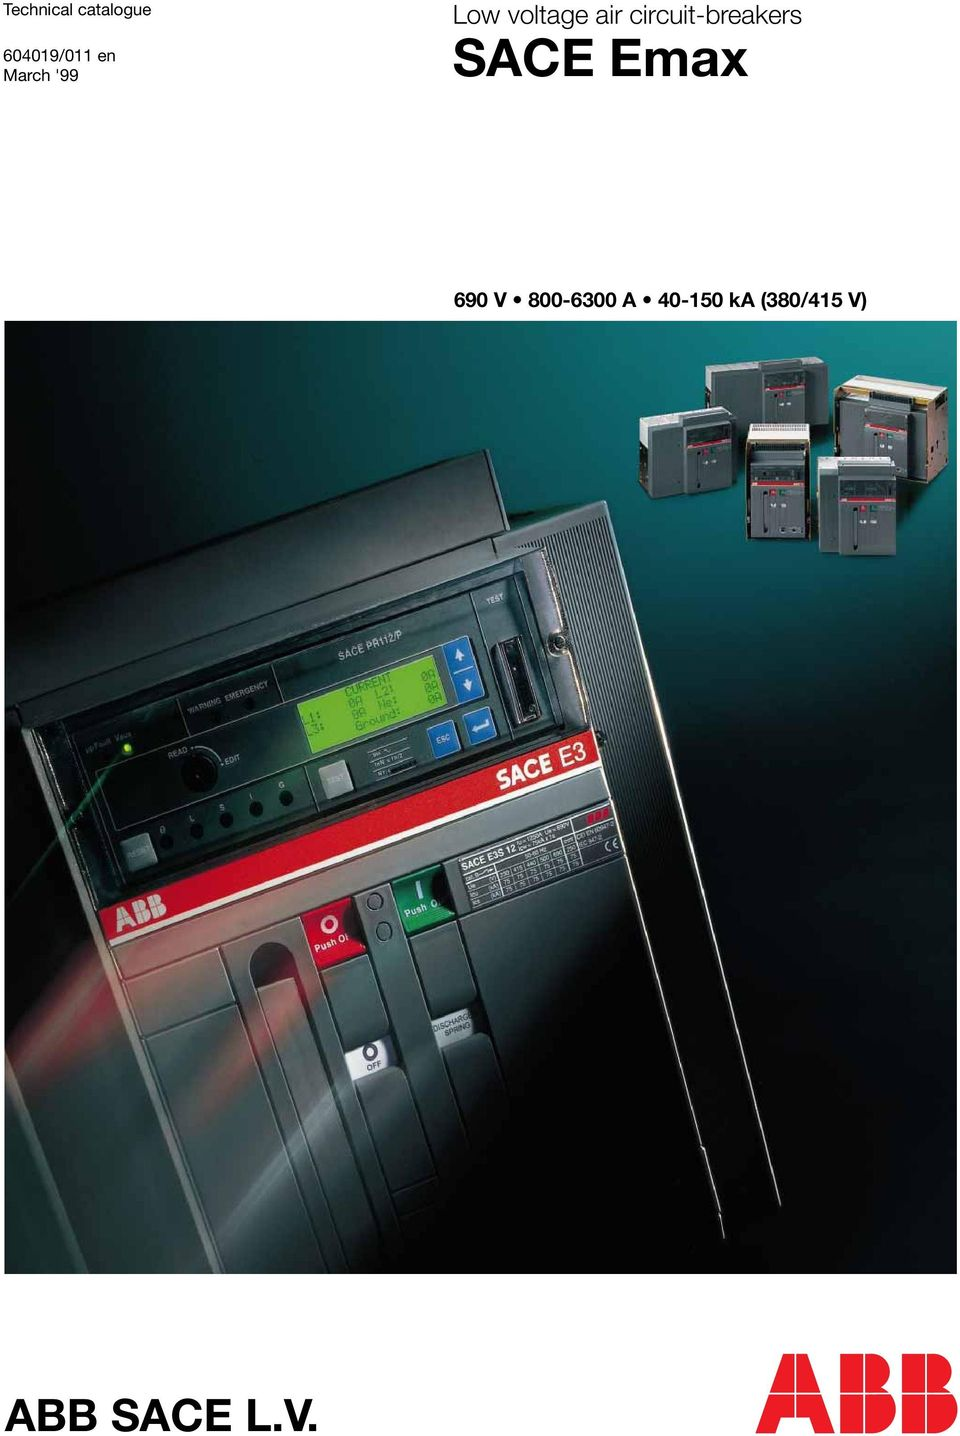 Technical Catalogue Low Voltage Air Circuit Breakers Sace Emax Abb Breaker Wiring Diagram 690 V